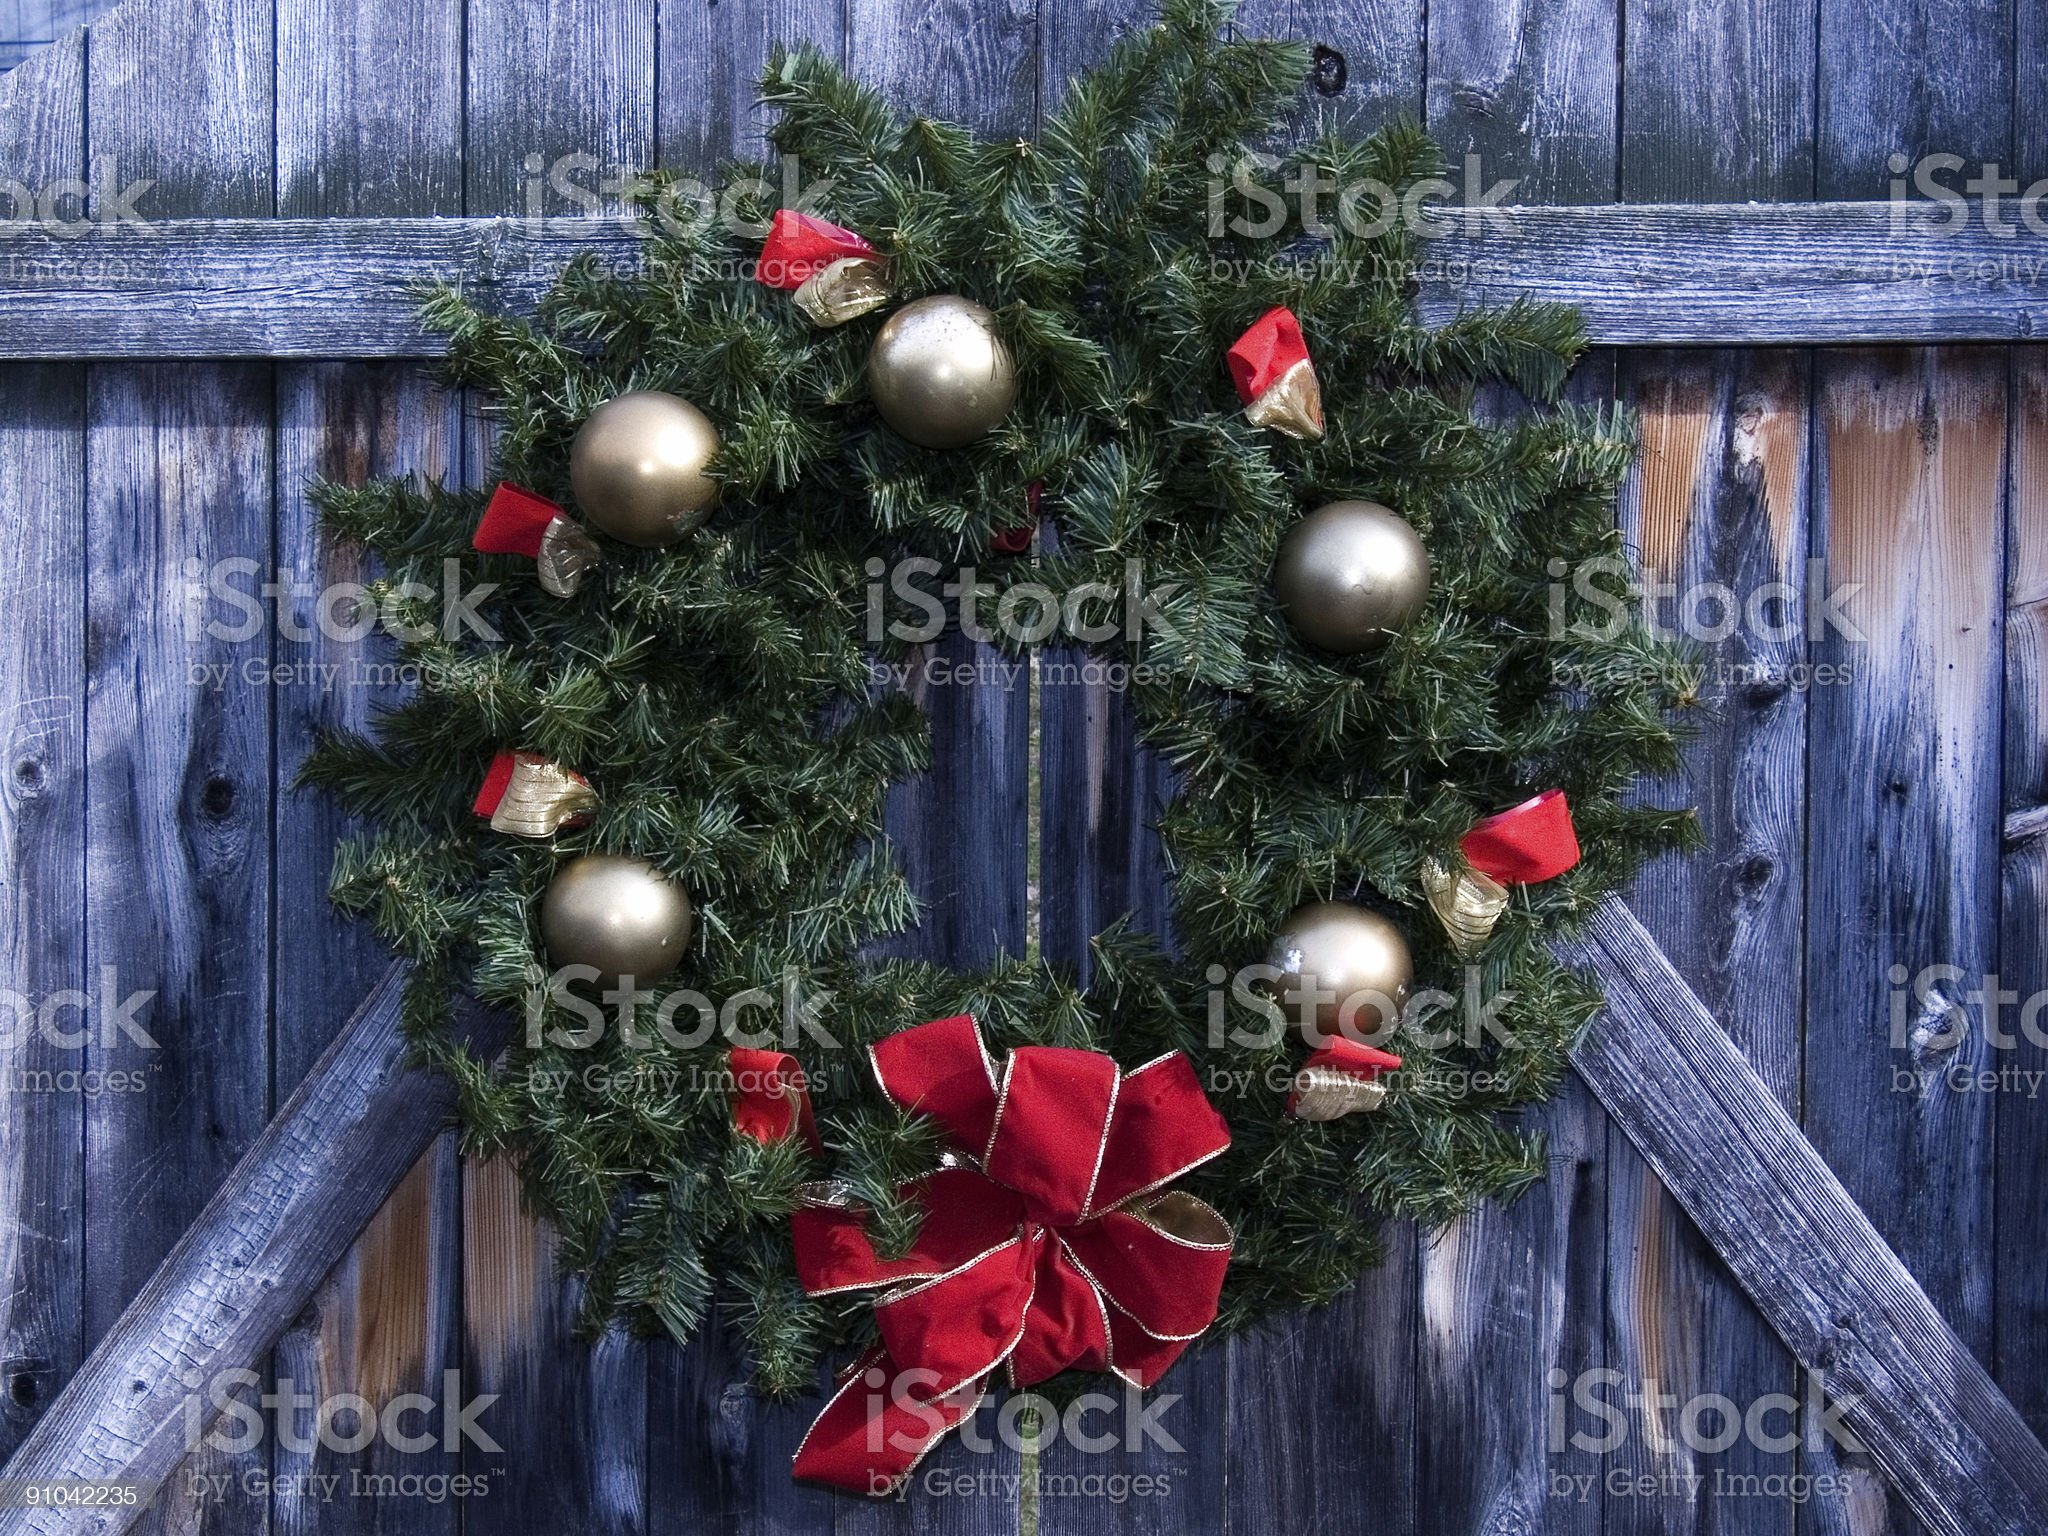 Christmas Wreath on Rustic Wooden Fence royalty-free stock photo